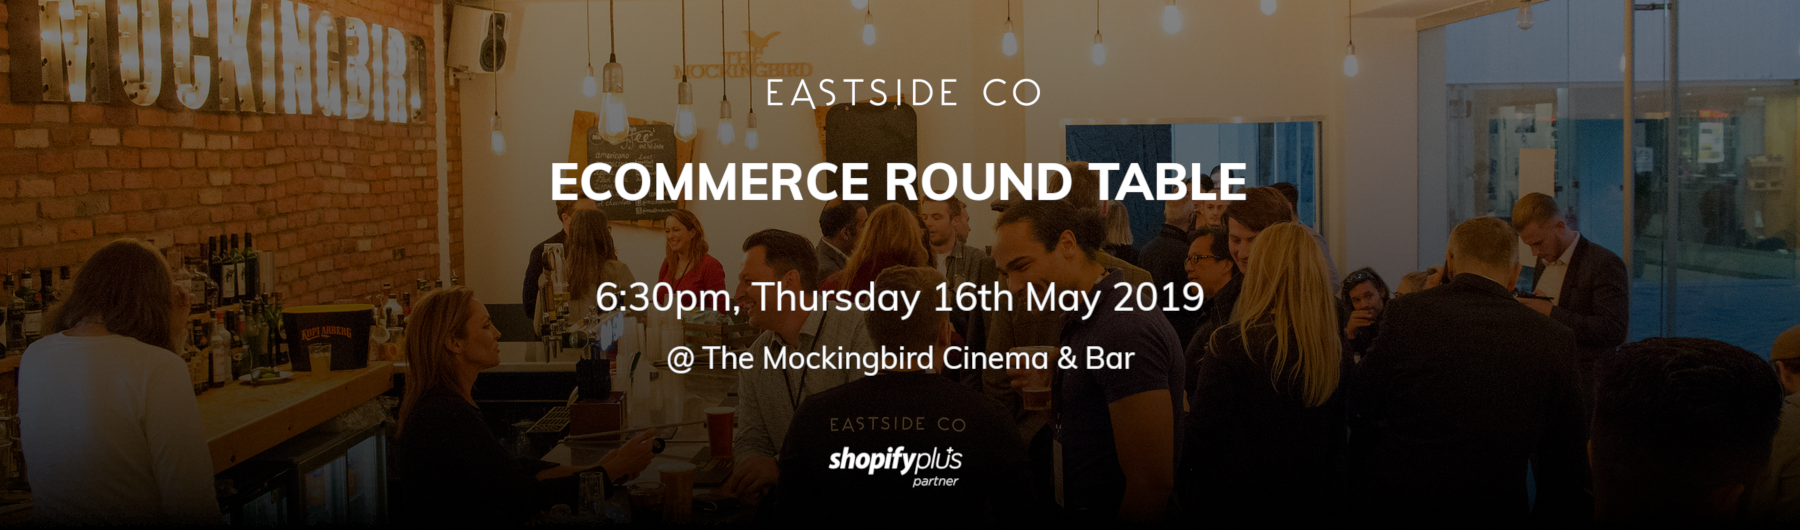 Shopify Meetup Birmingham - Ecommerce Round Table - May 2019